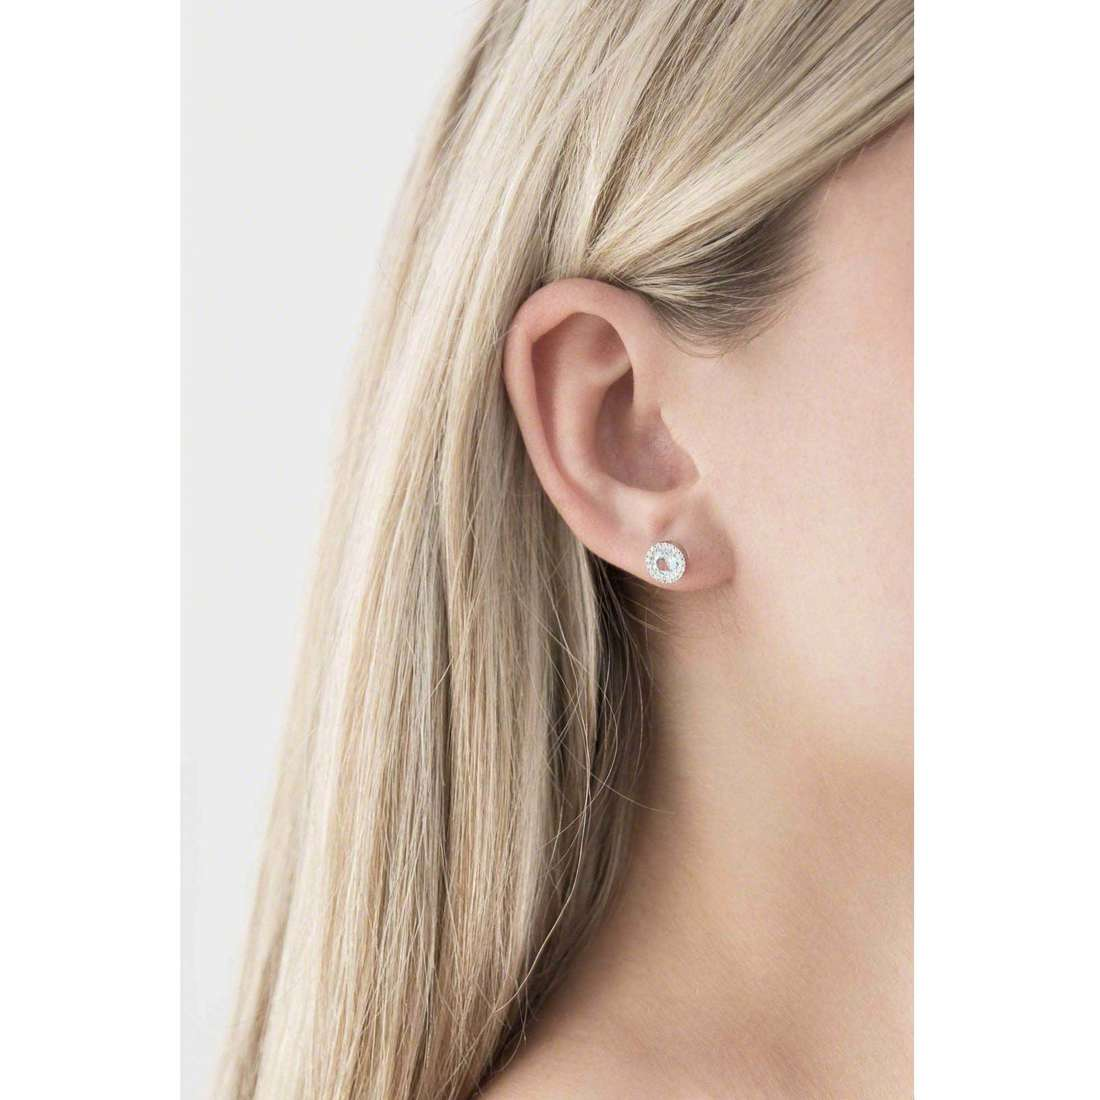 Bliss boucles d'oreille Enjoy femme 20061240 indosso